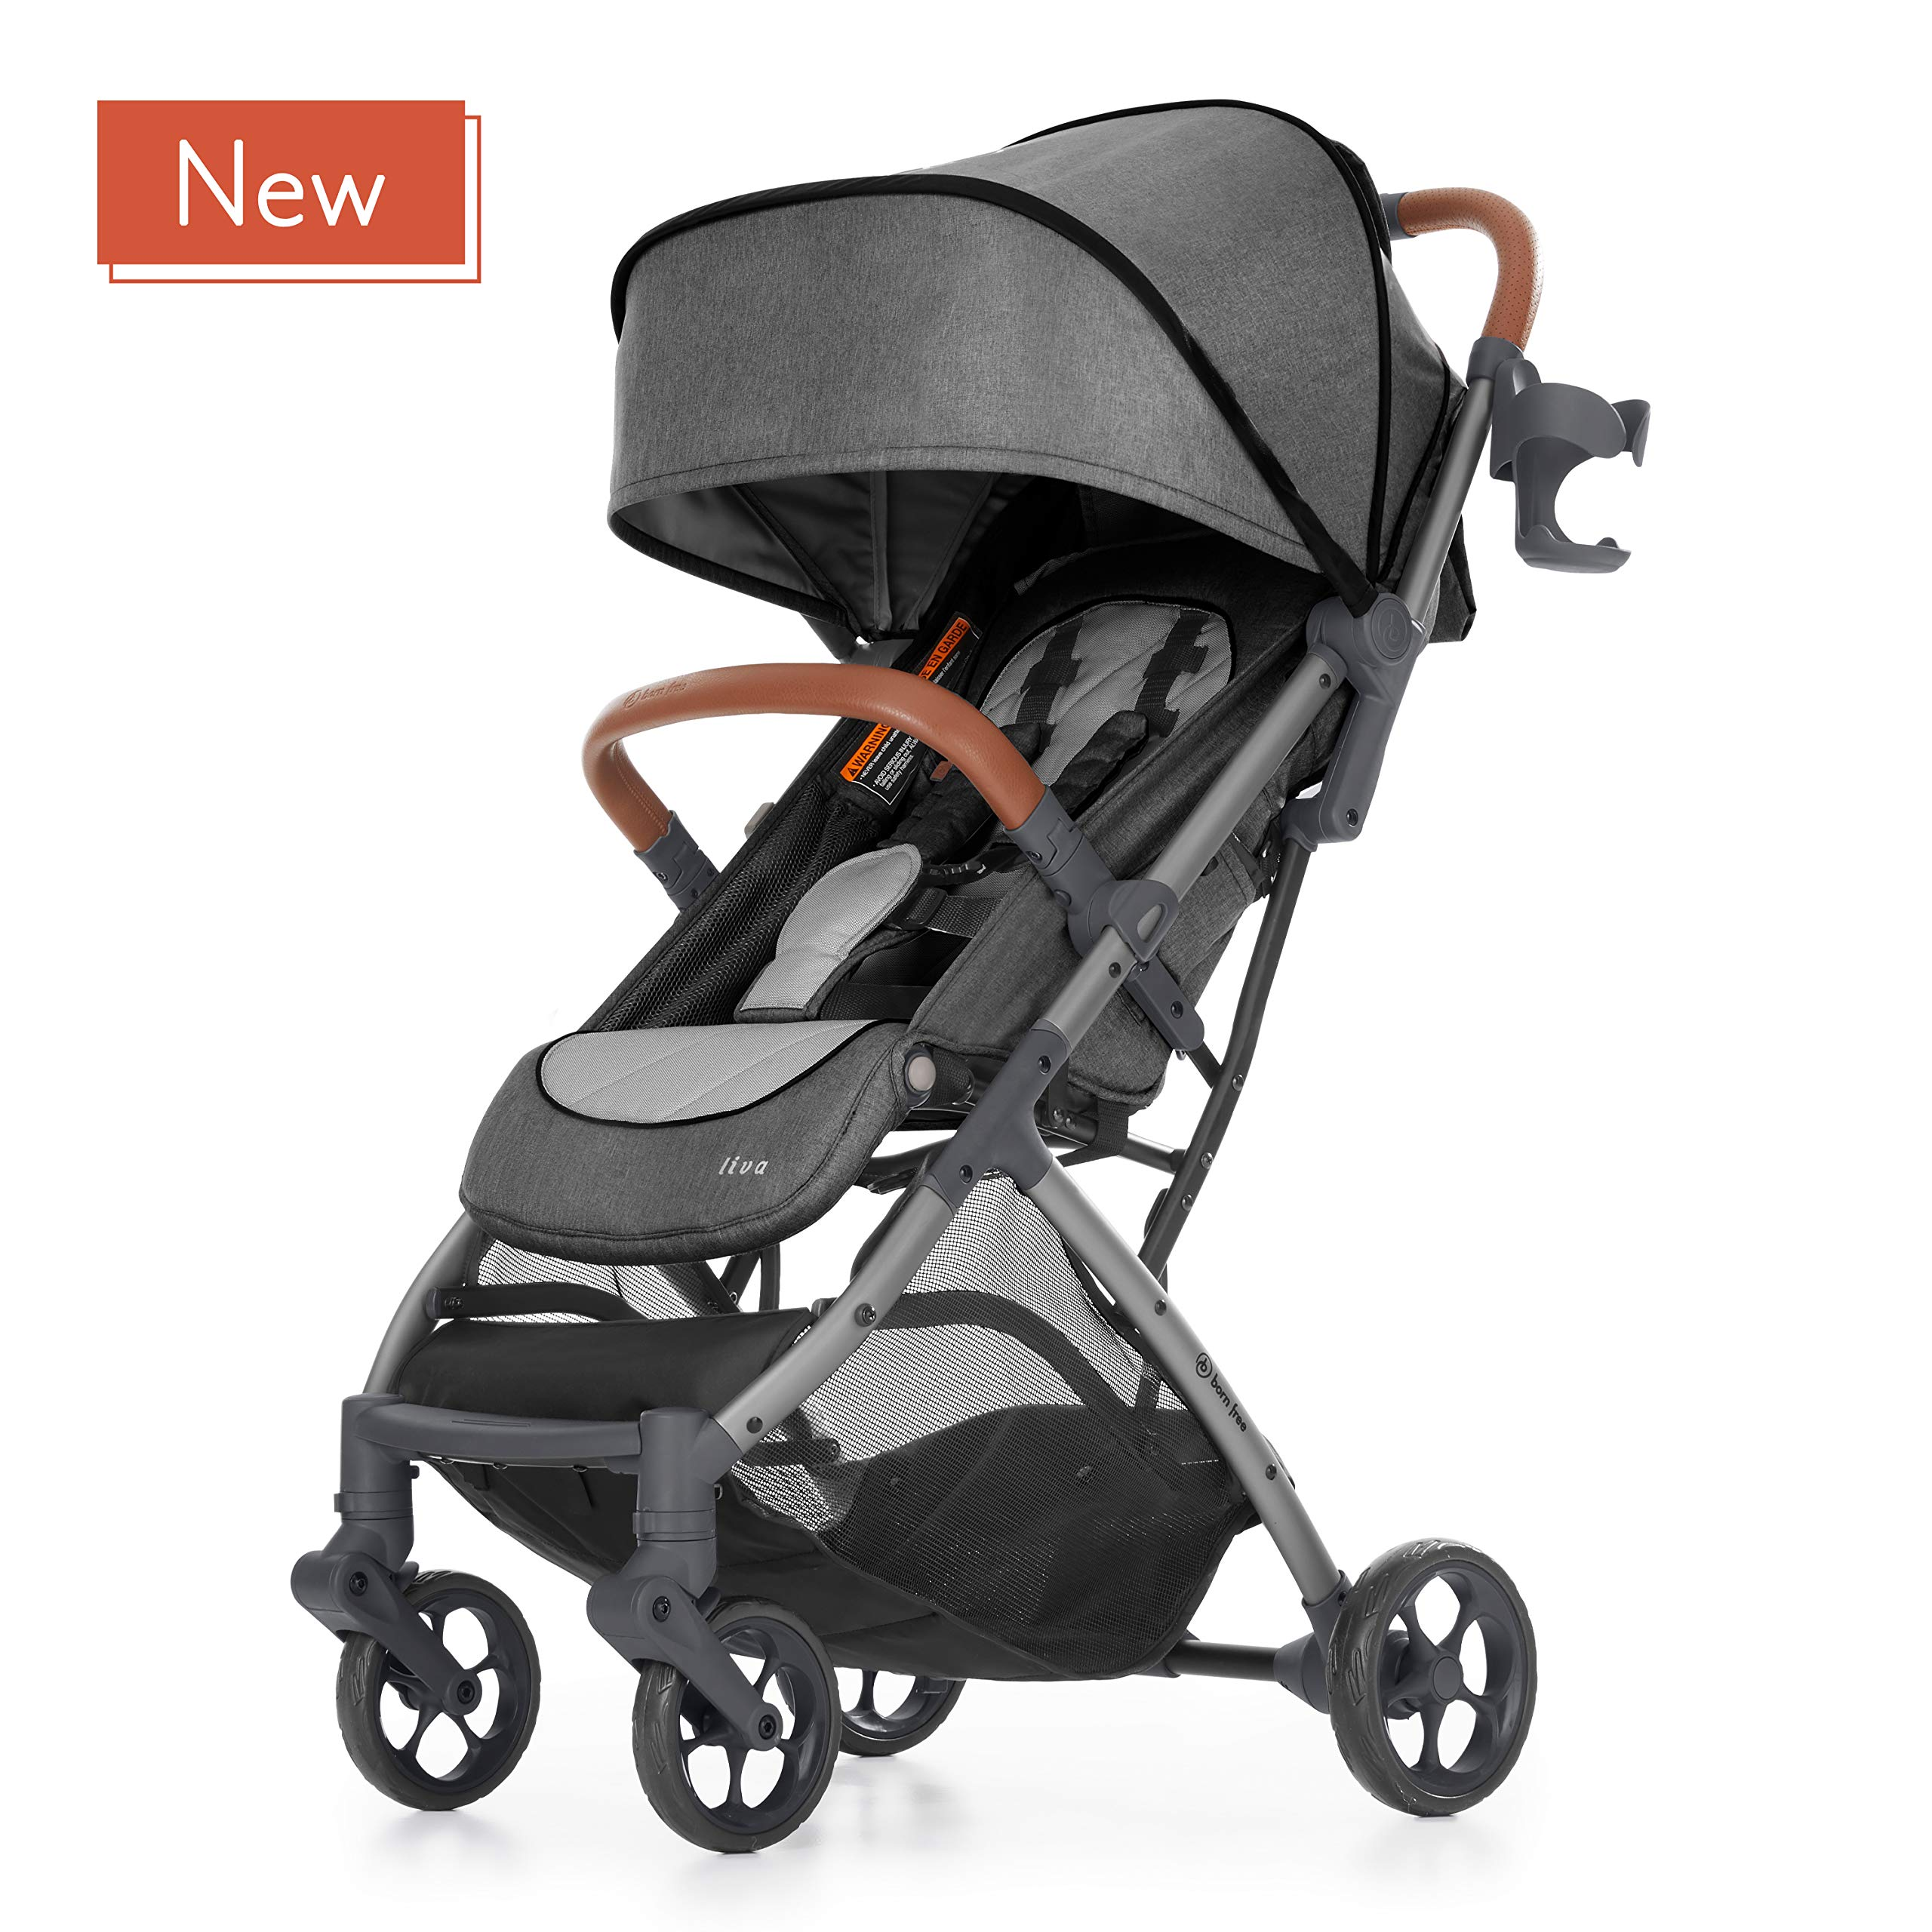 born free LIVA Compact Fold Stroller - Lightweight Stroller with Compact Fold and Lightweight Frame - Oversized Canopy and Large Storage Basket